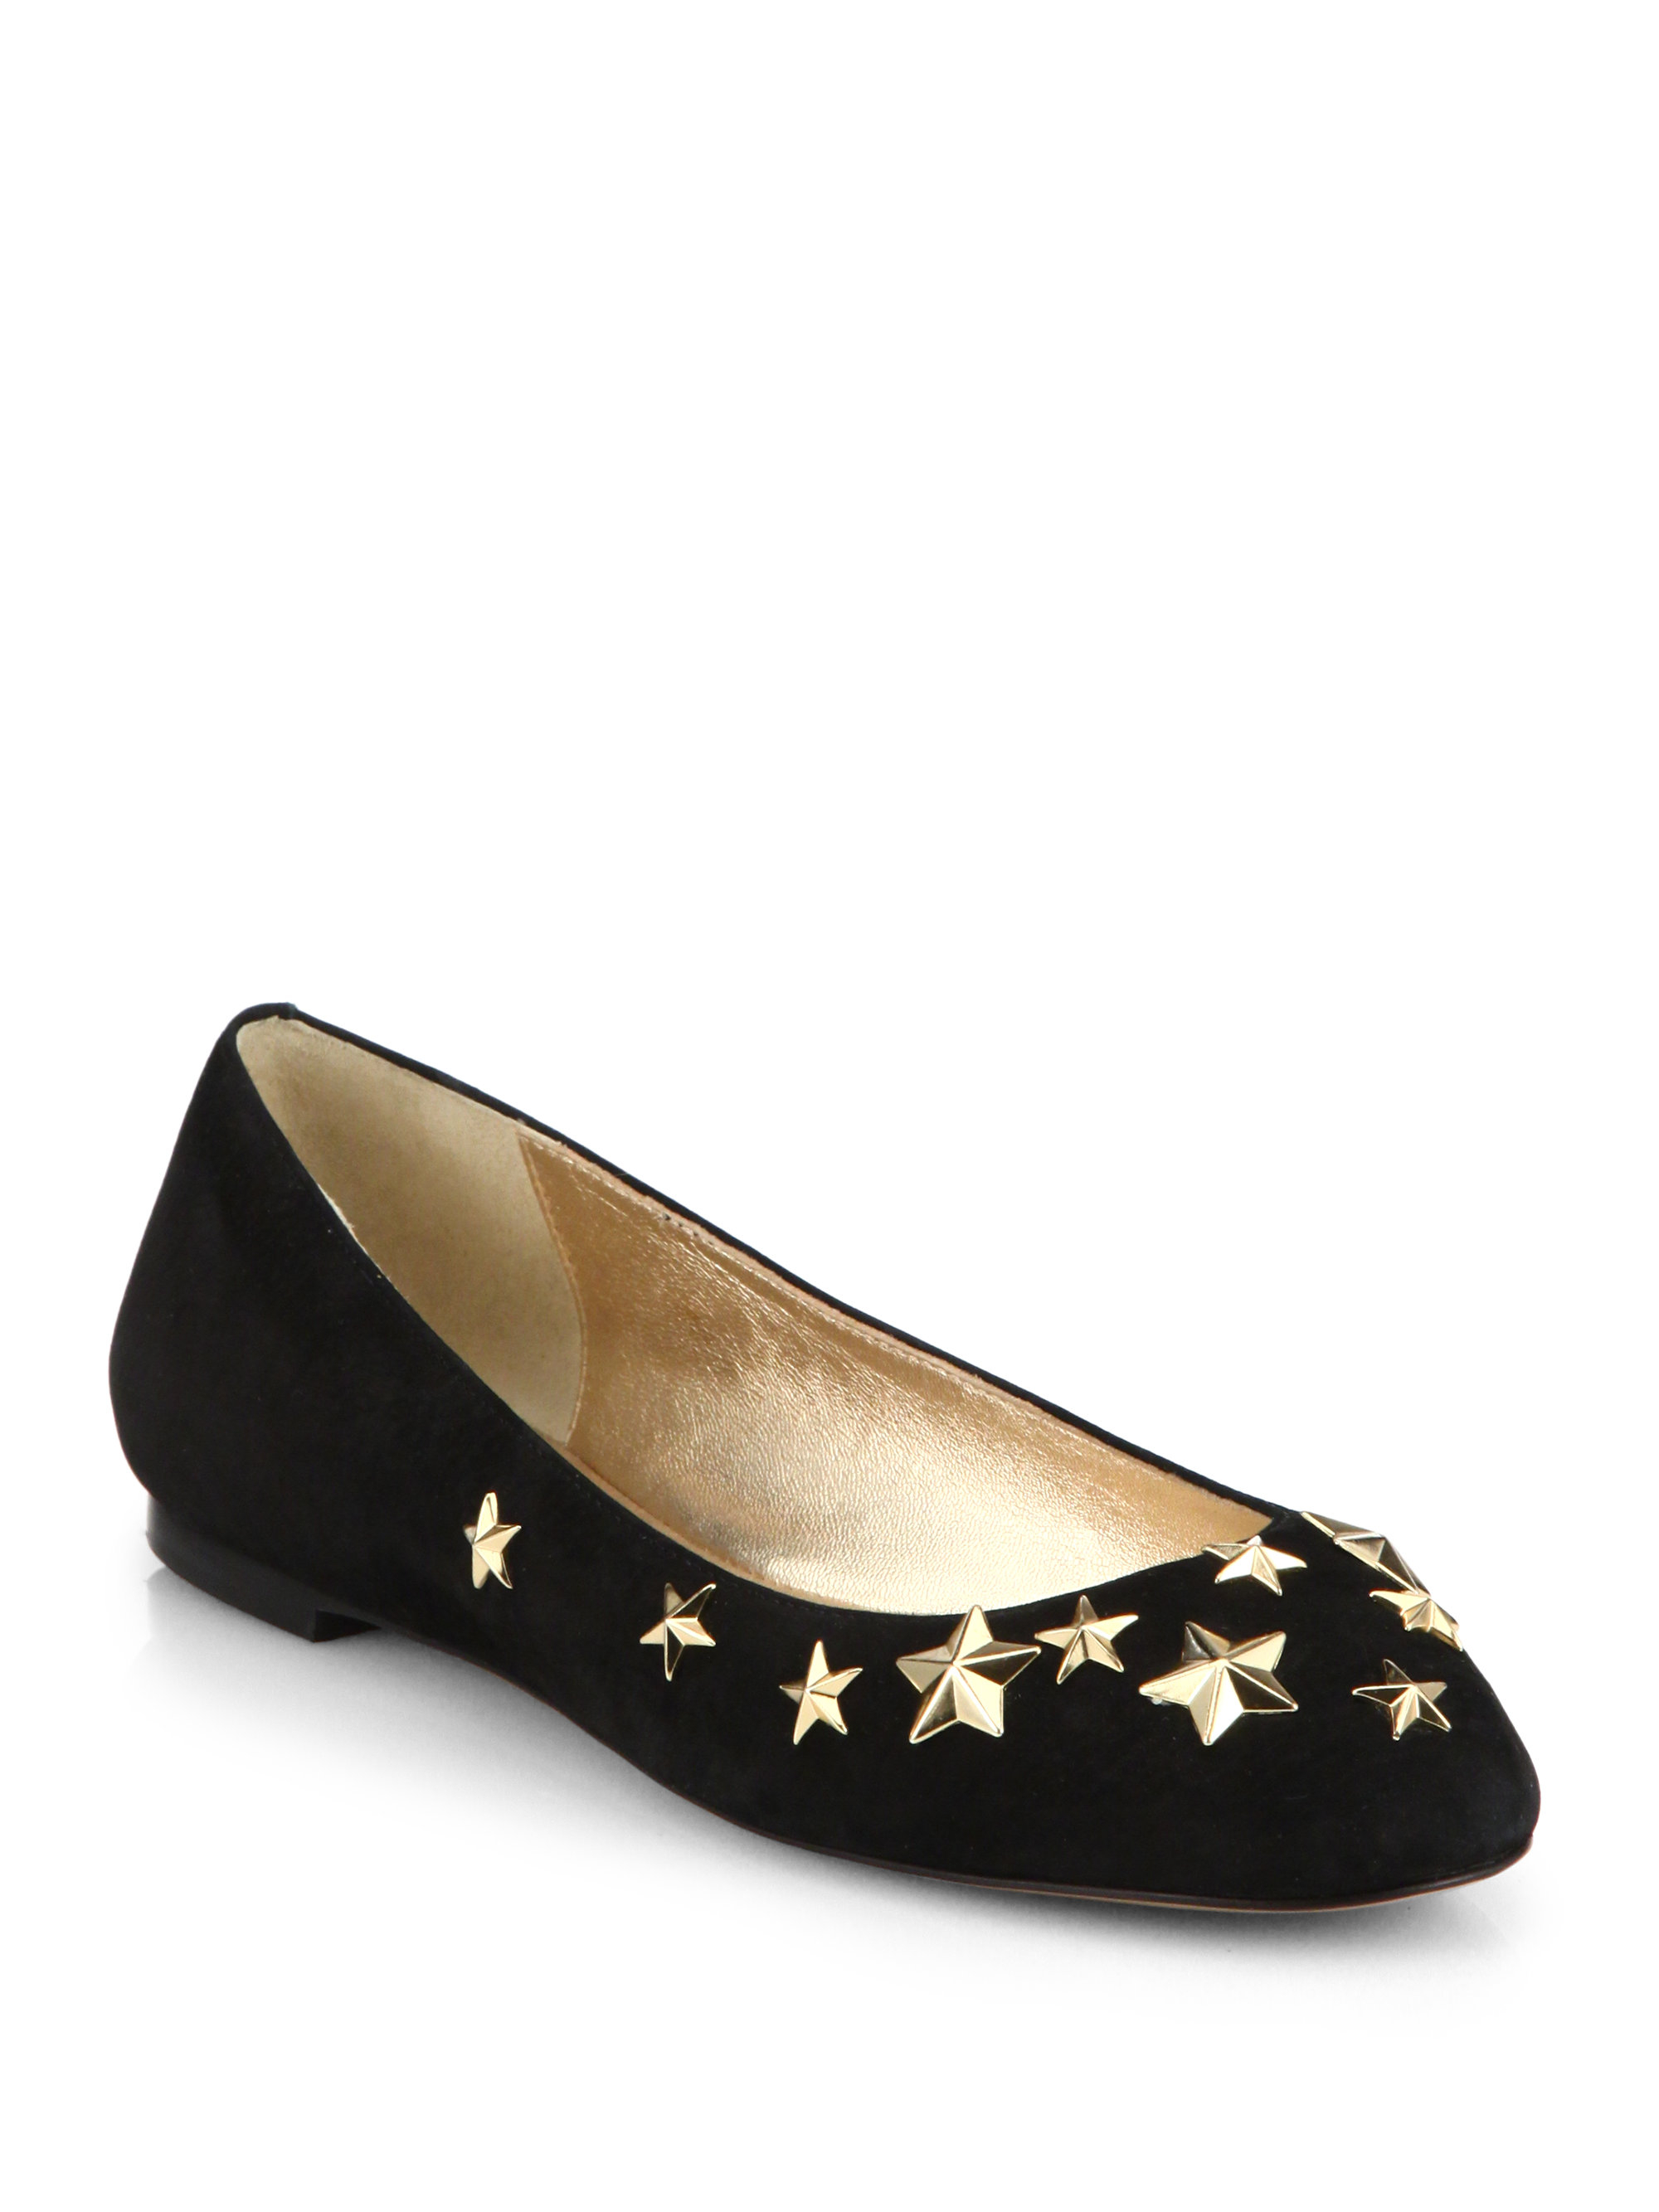 Kate spade new york suede embellished flats in black lyst for Kate spade new york flats